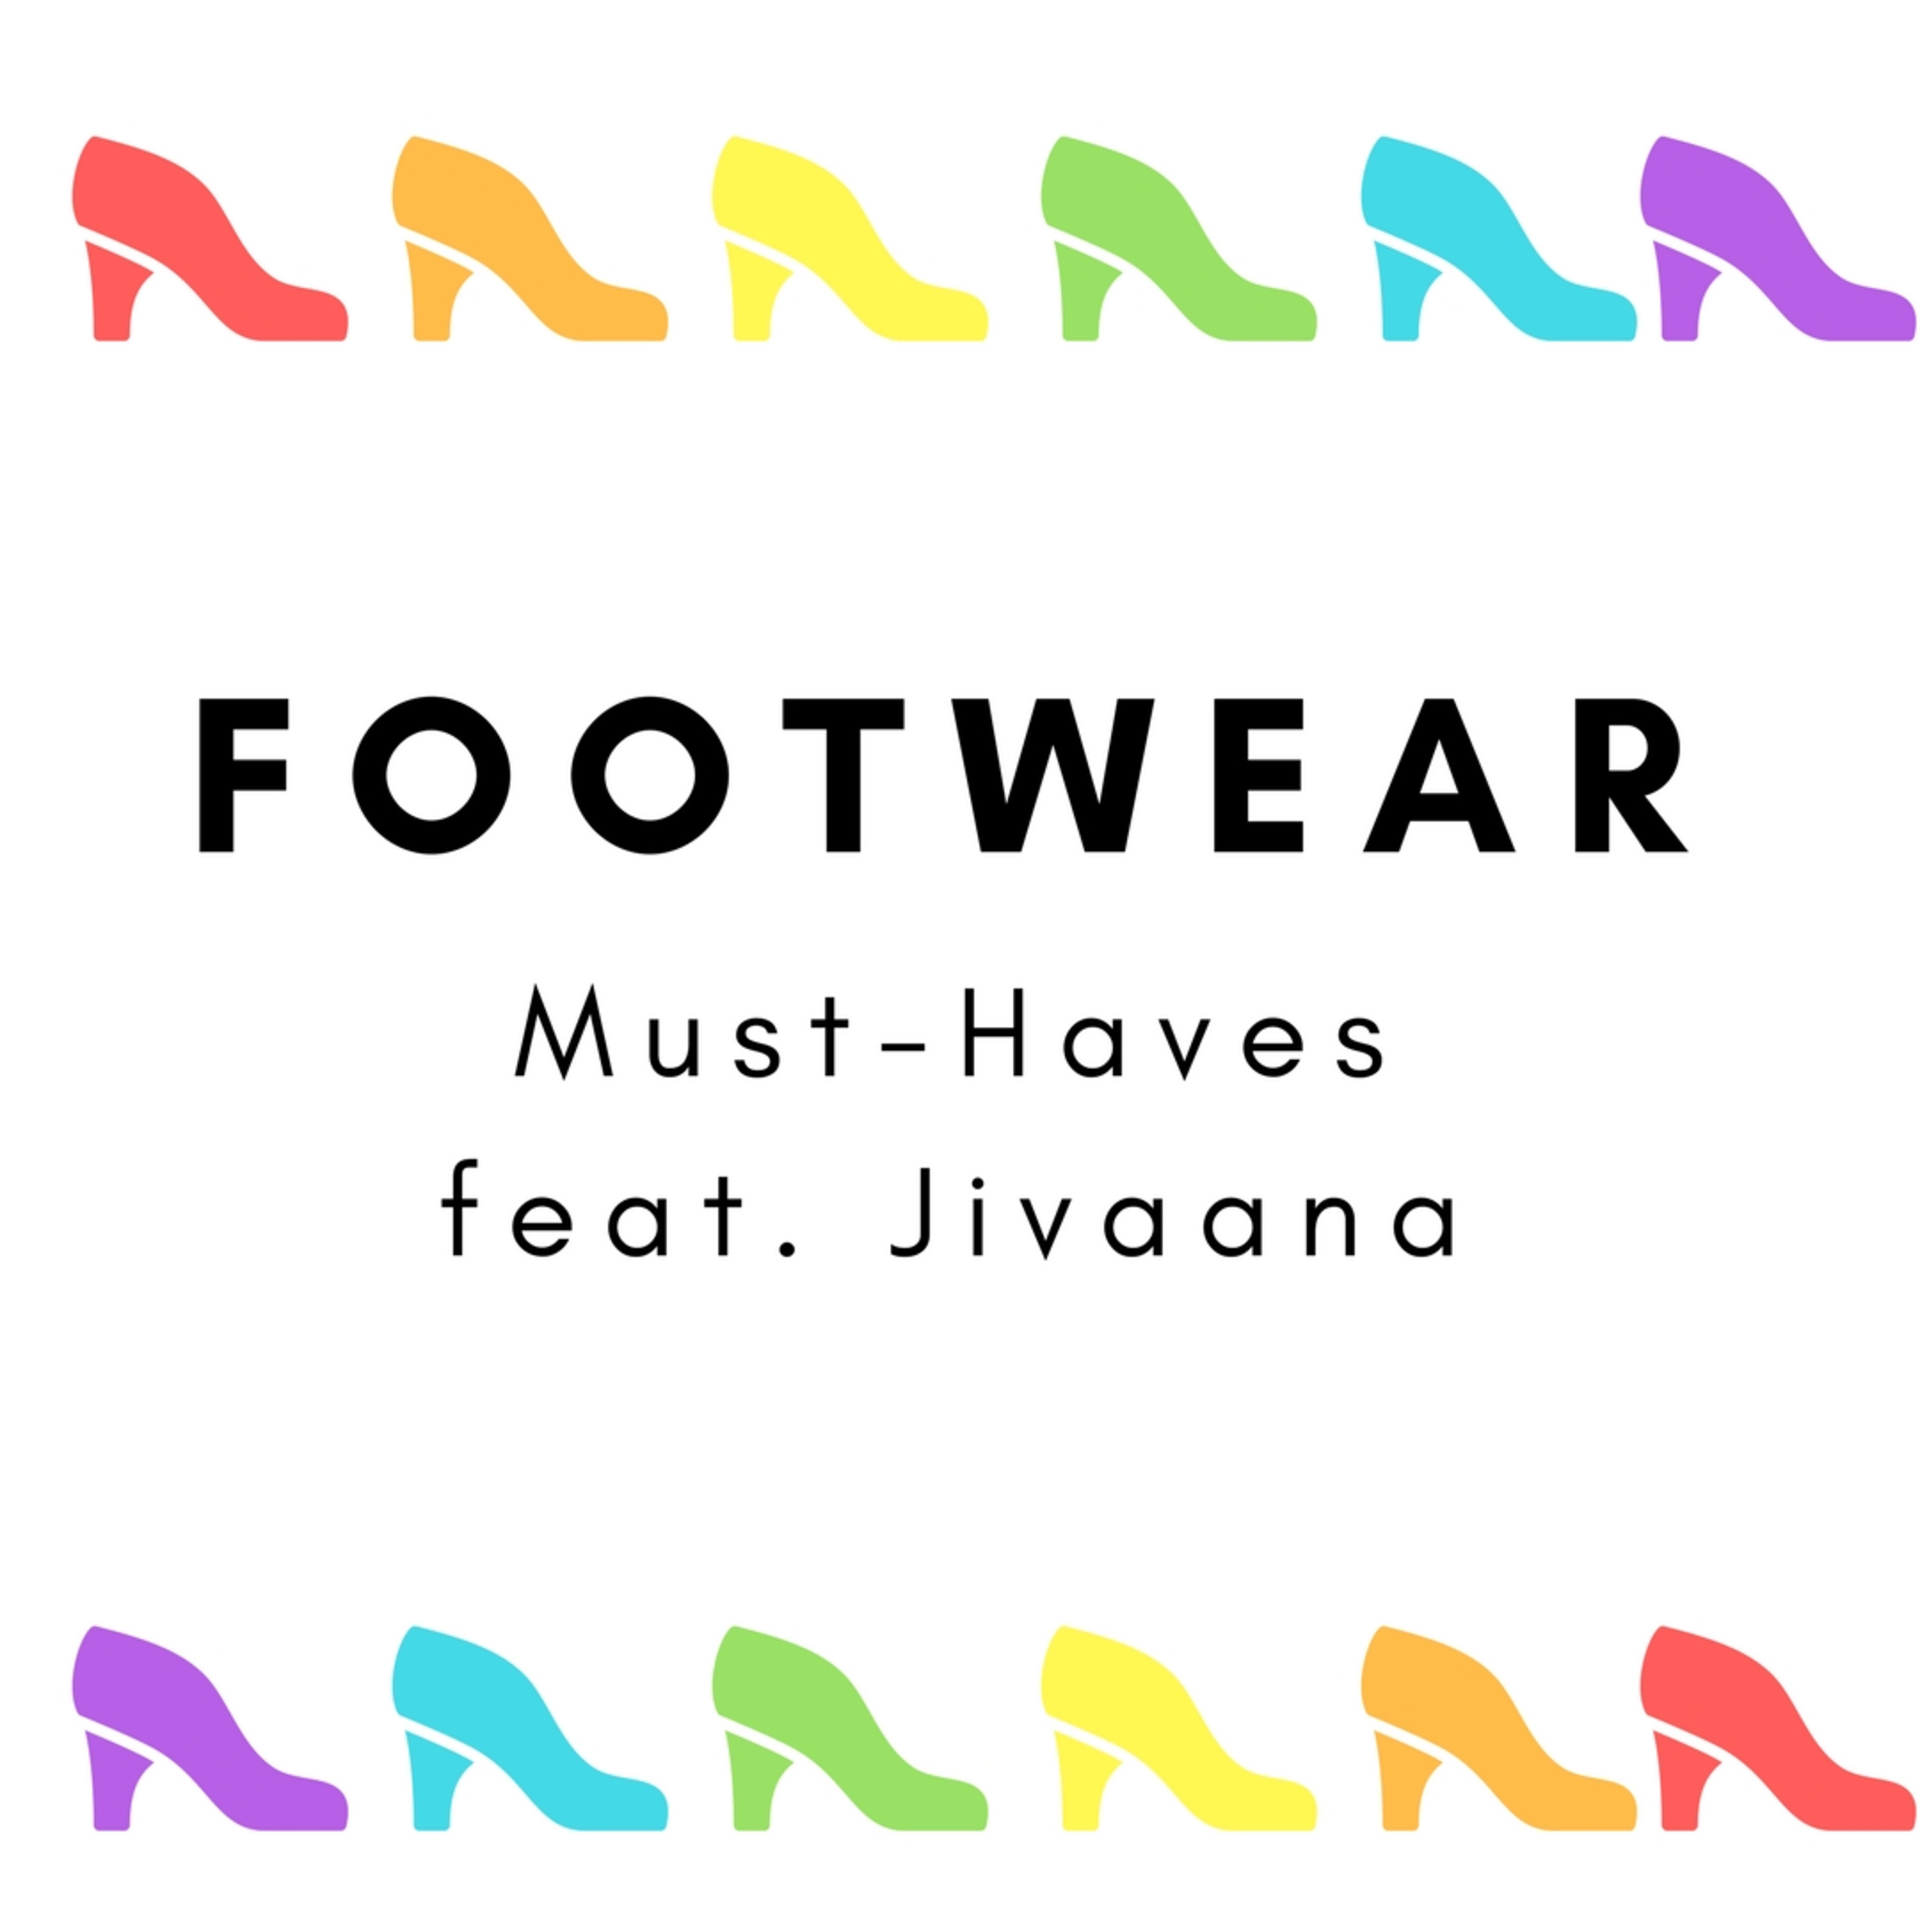 Footwear Must-Haves featuring Jivaana.com image